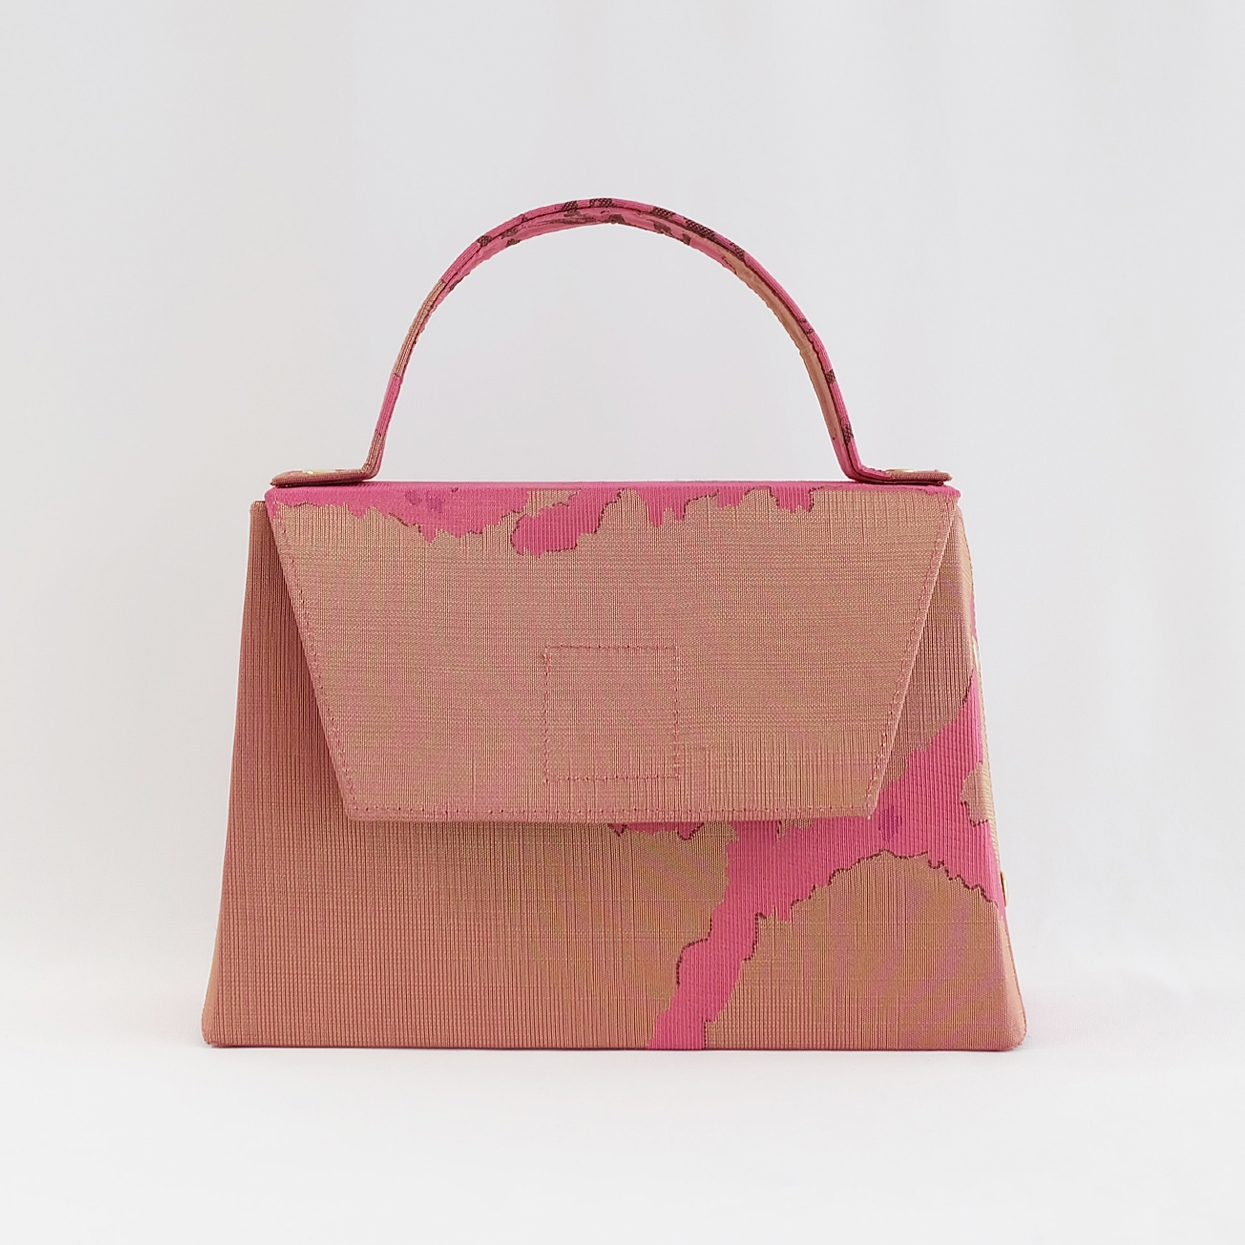 Ceesay Bag in Abstract Golden Pink